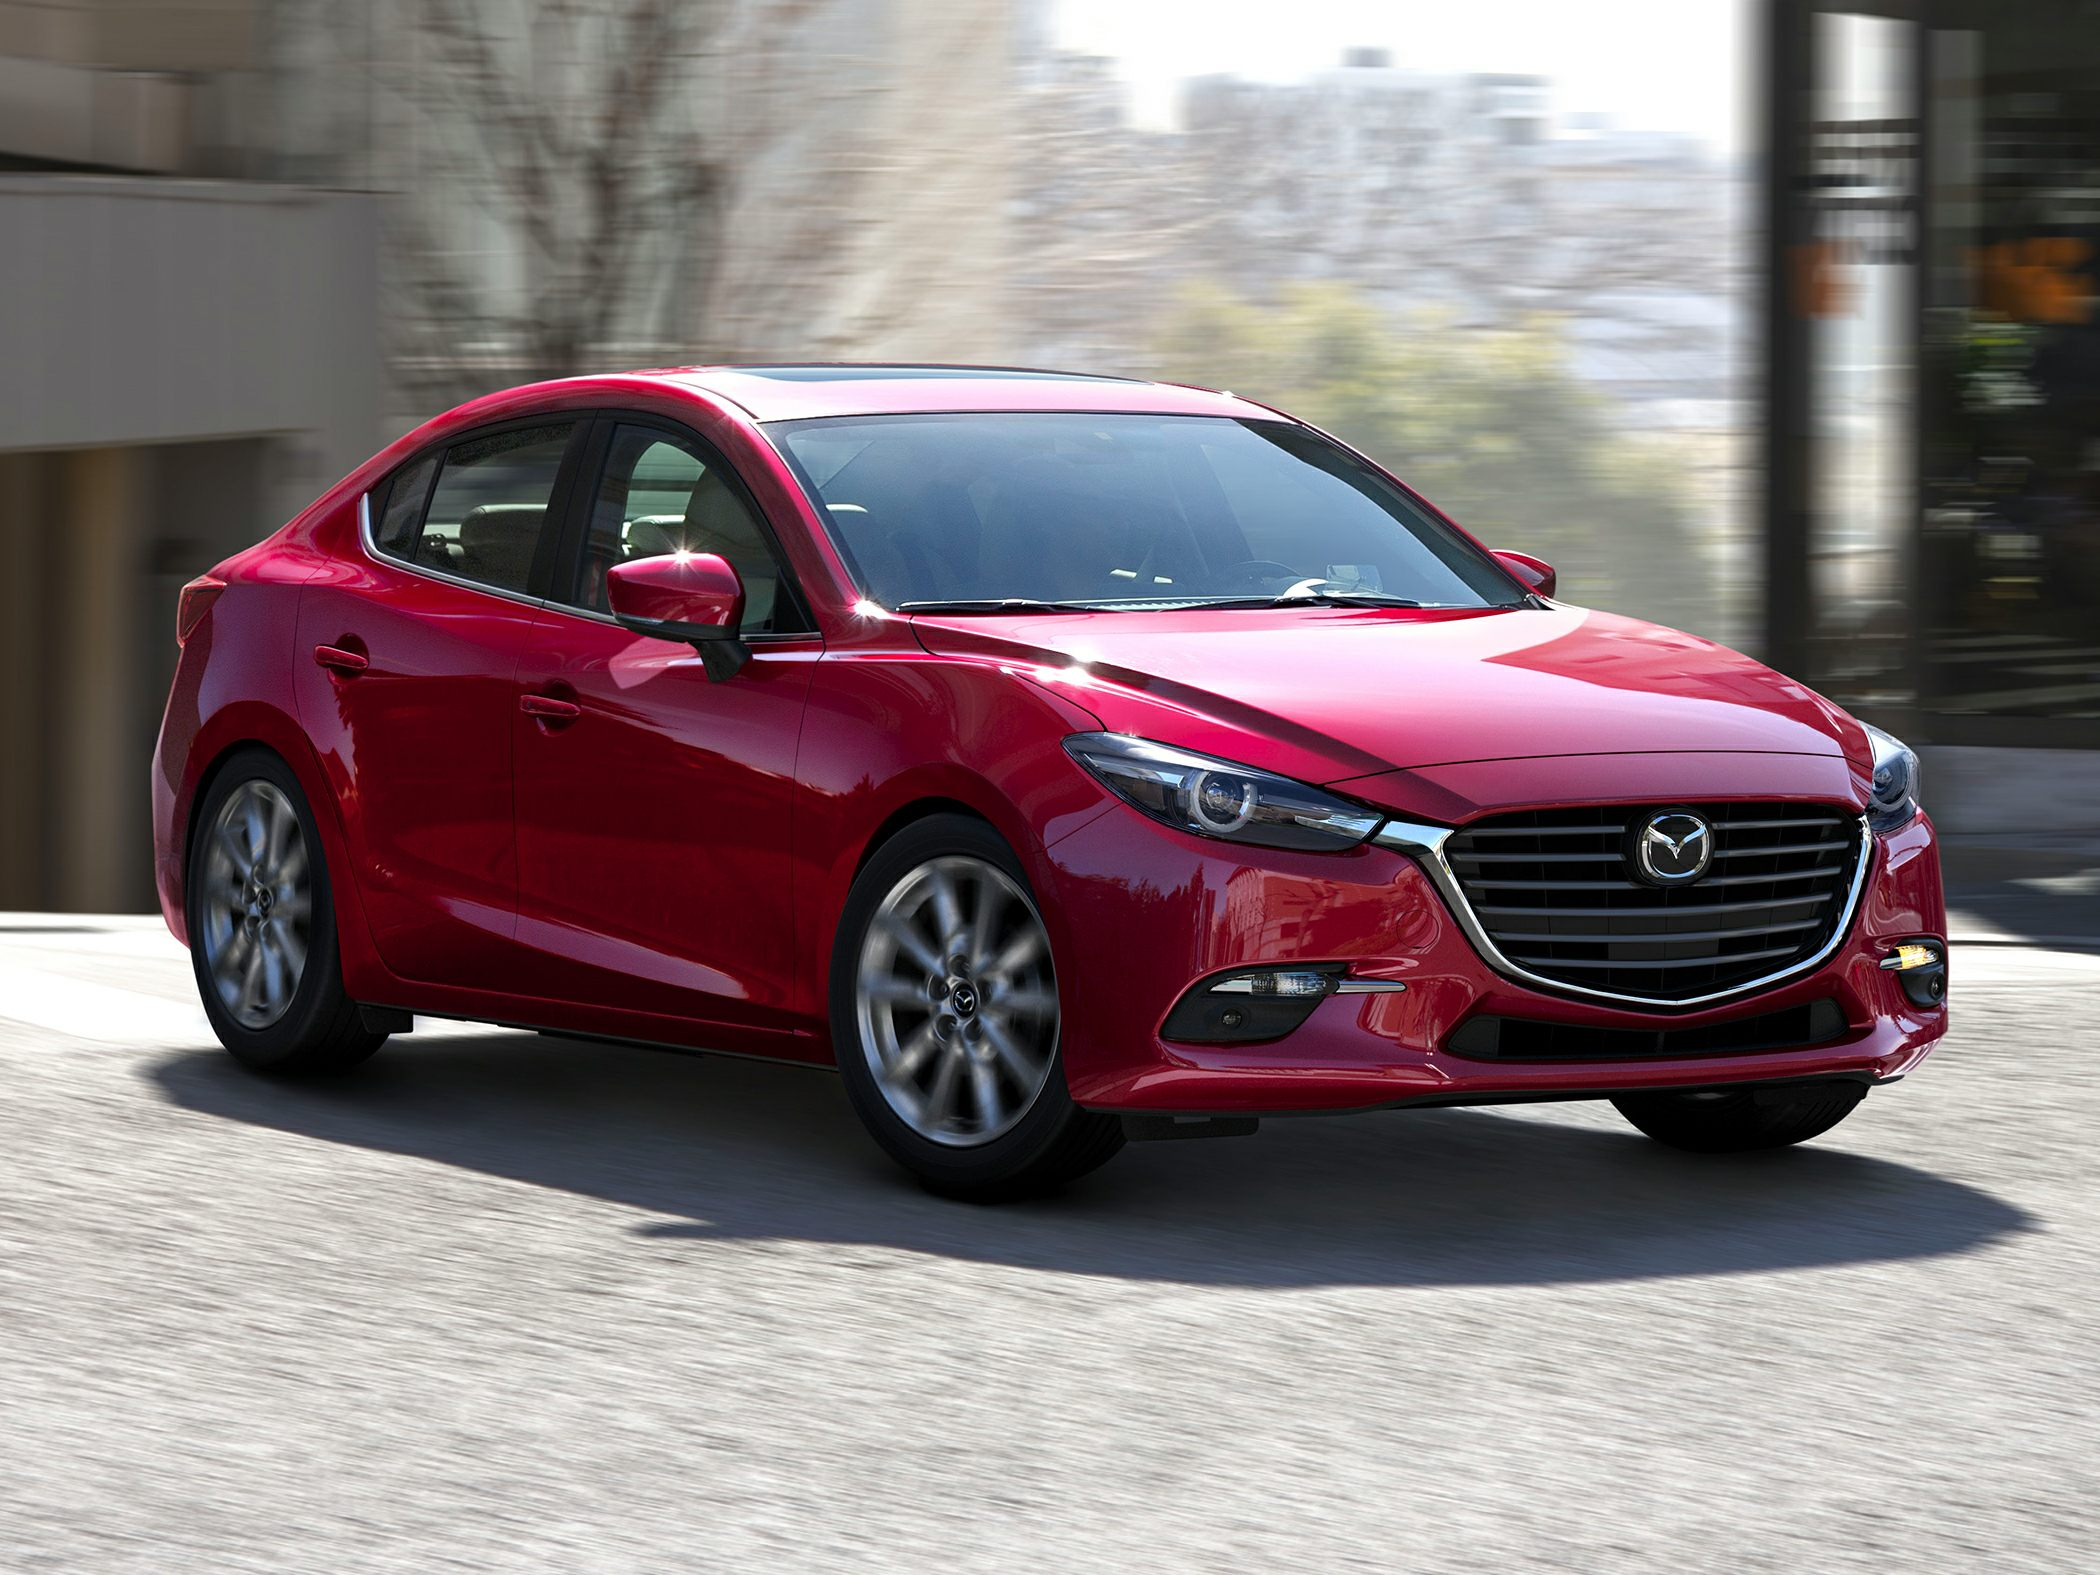 2018 Mazda Mazda3 Deals Prices Incentives Leases Overview